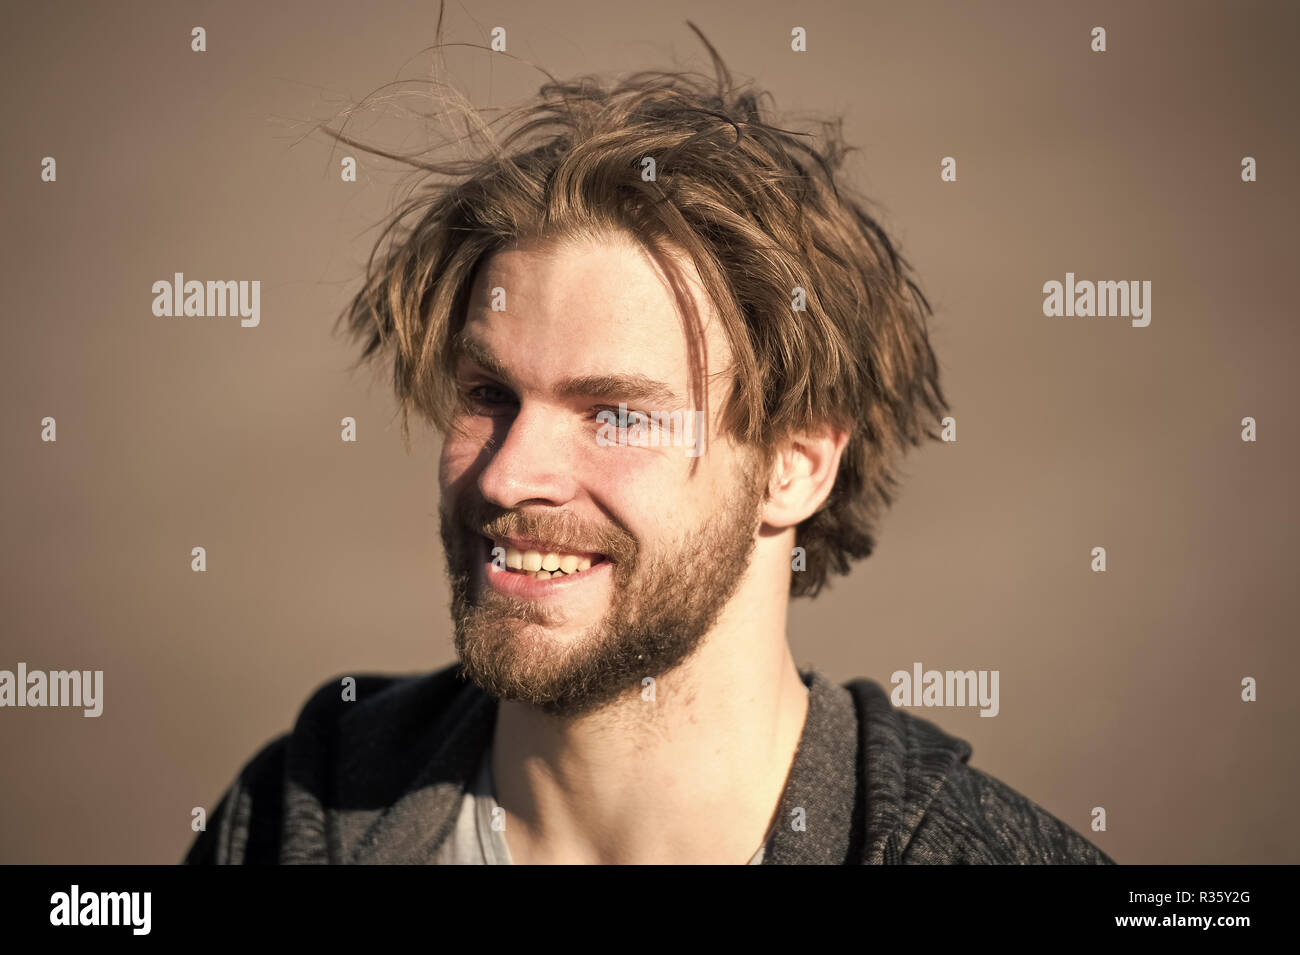 happy handsome man with smiling face or bearded guy with beard and